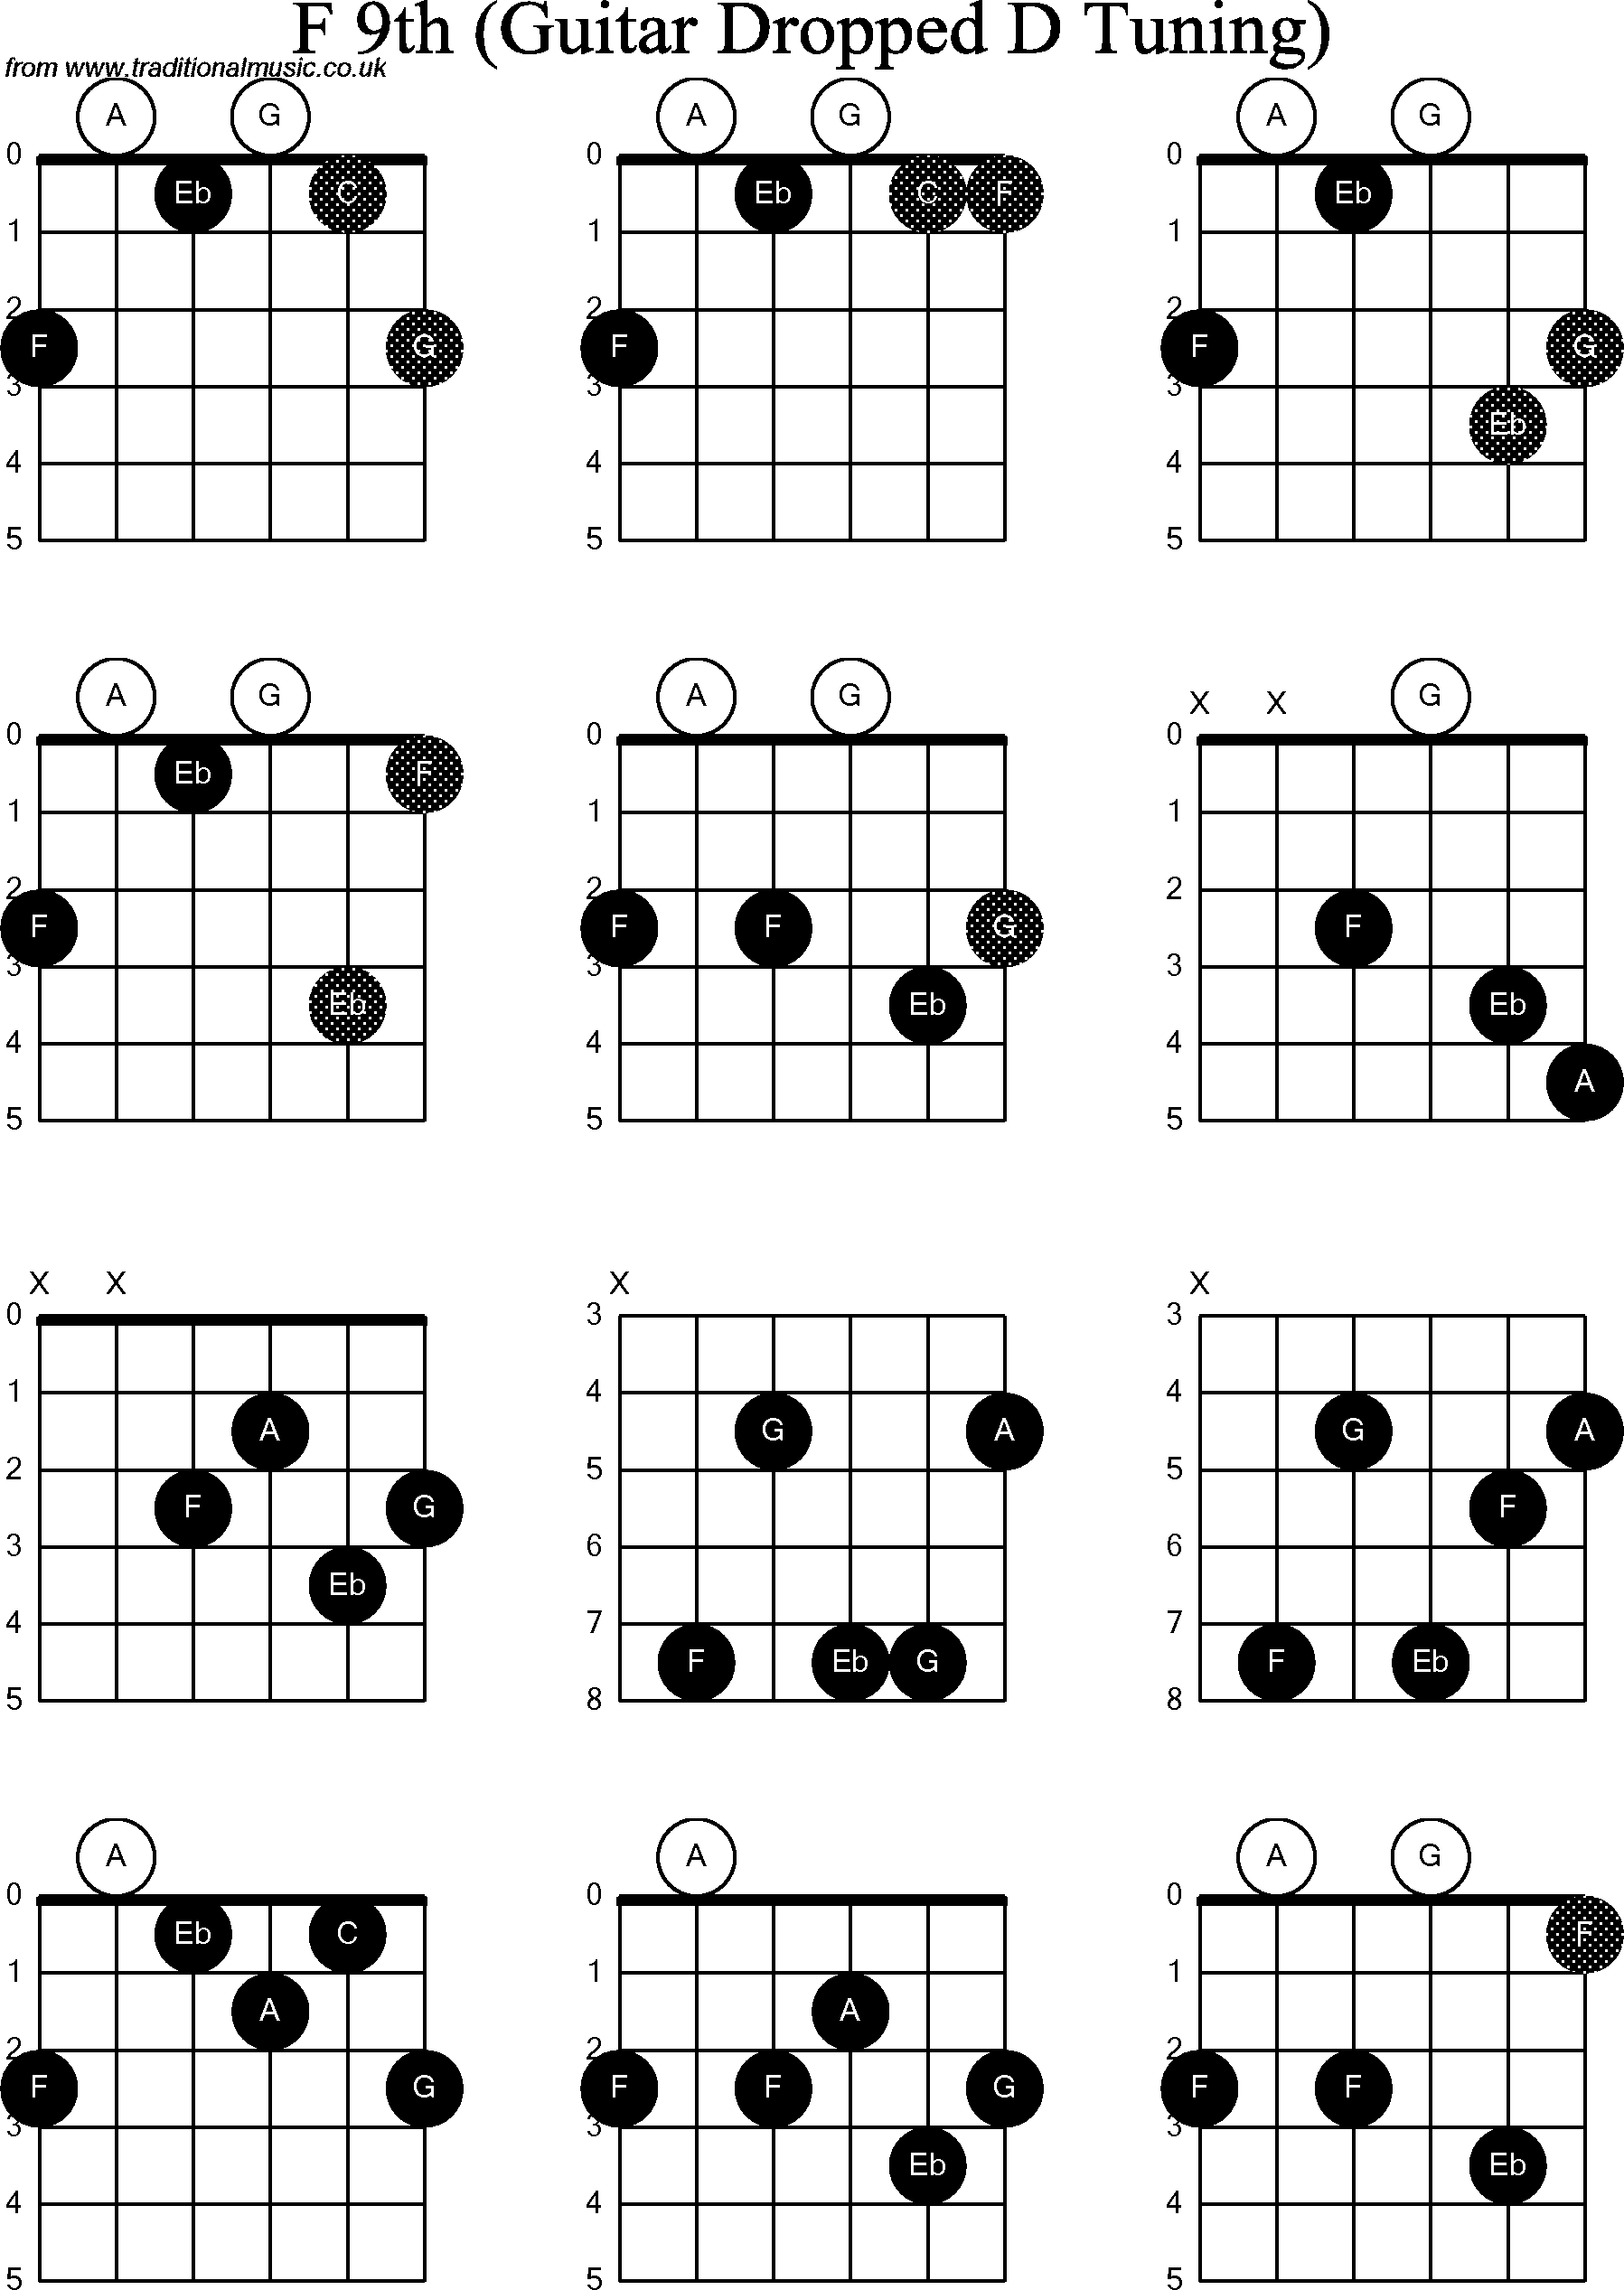 chord diagrams for dropped d guitar dadgbe   f9th